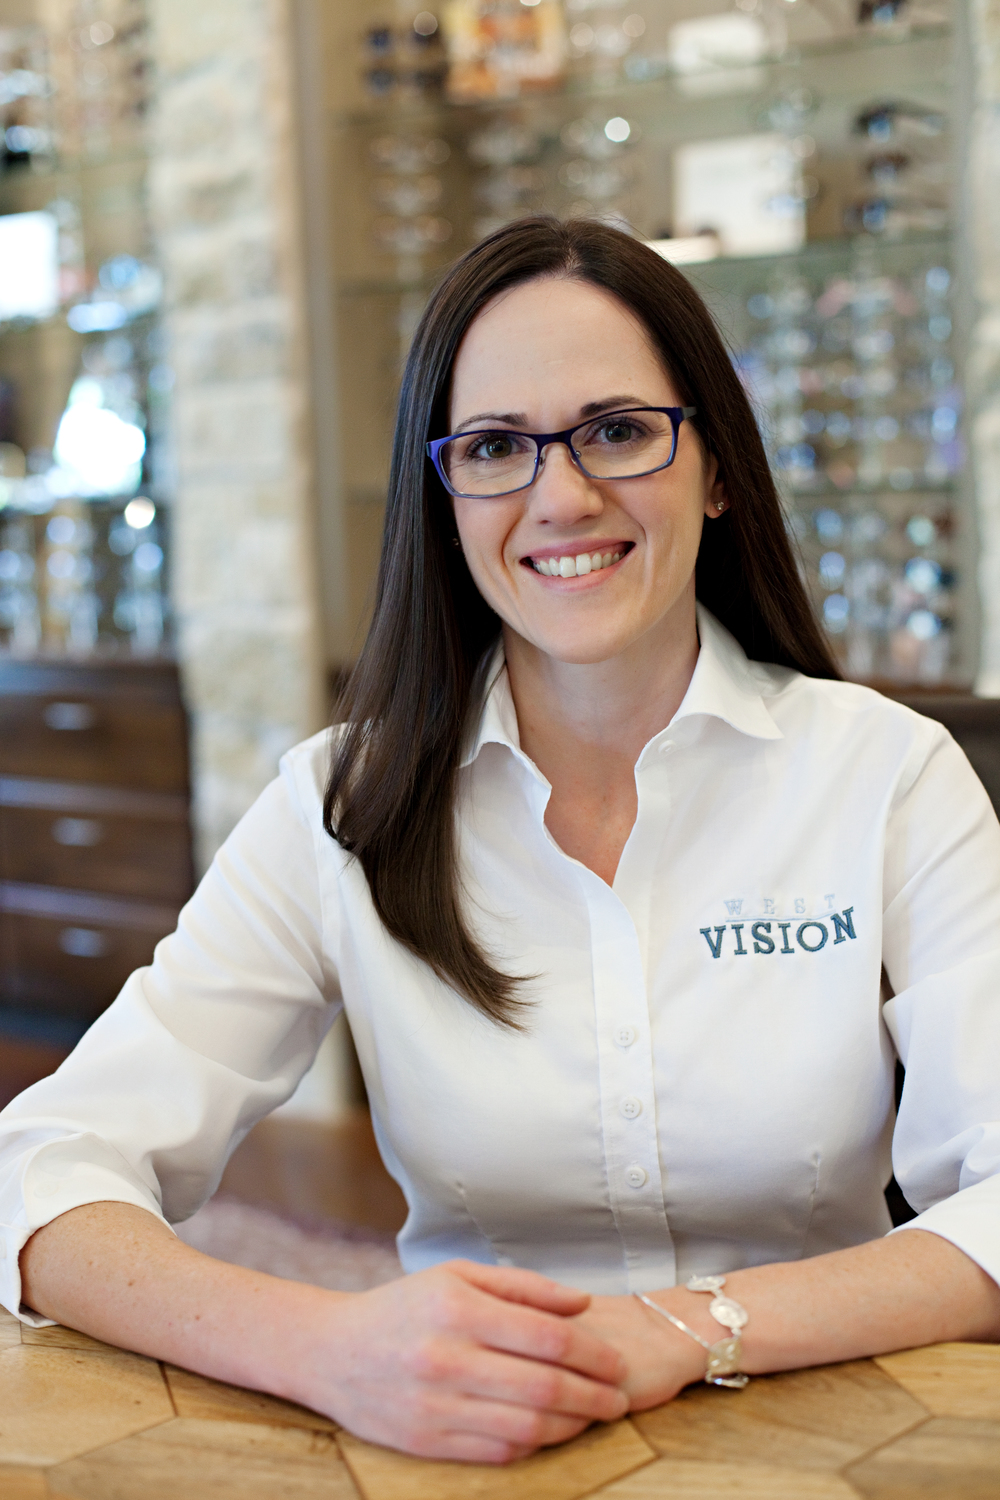 Andrea Manager/Optician 19 years in Optometric sales and service, with an expertise in lens designs and fit.